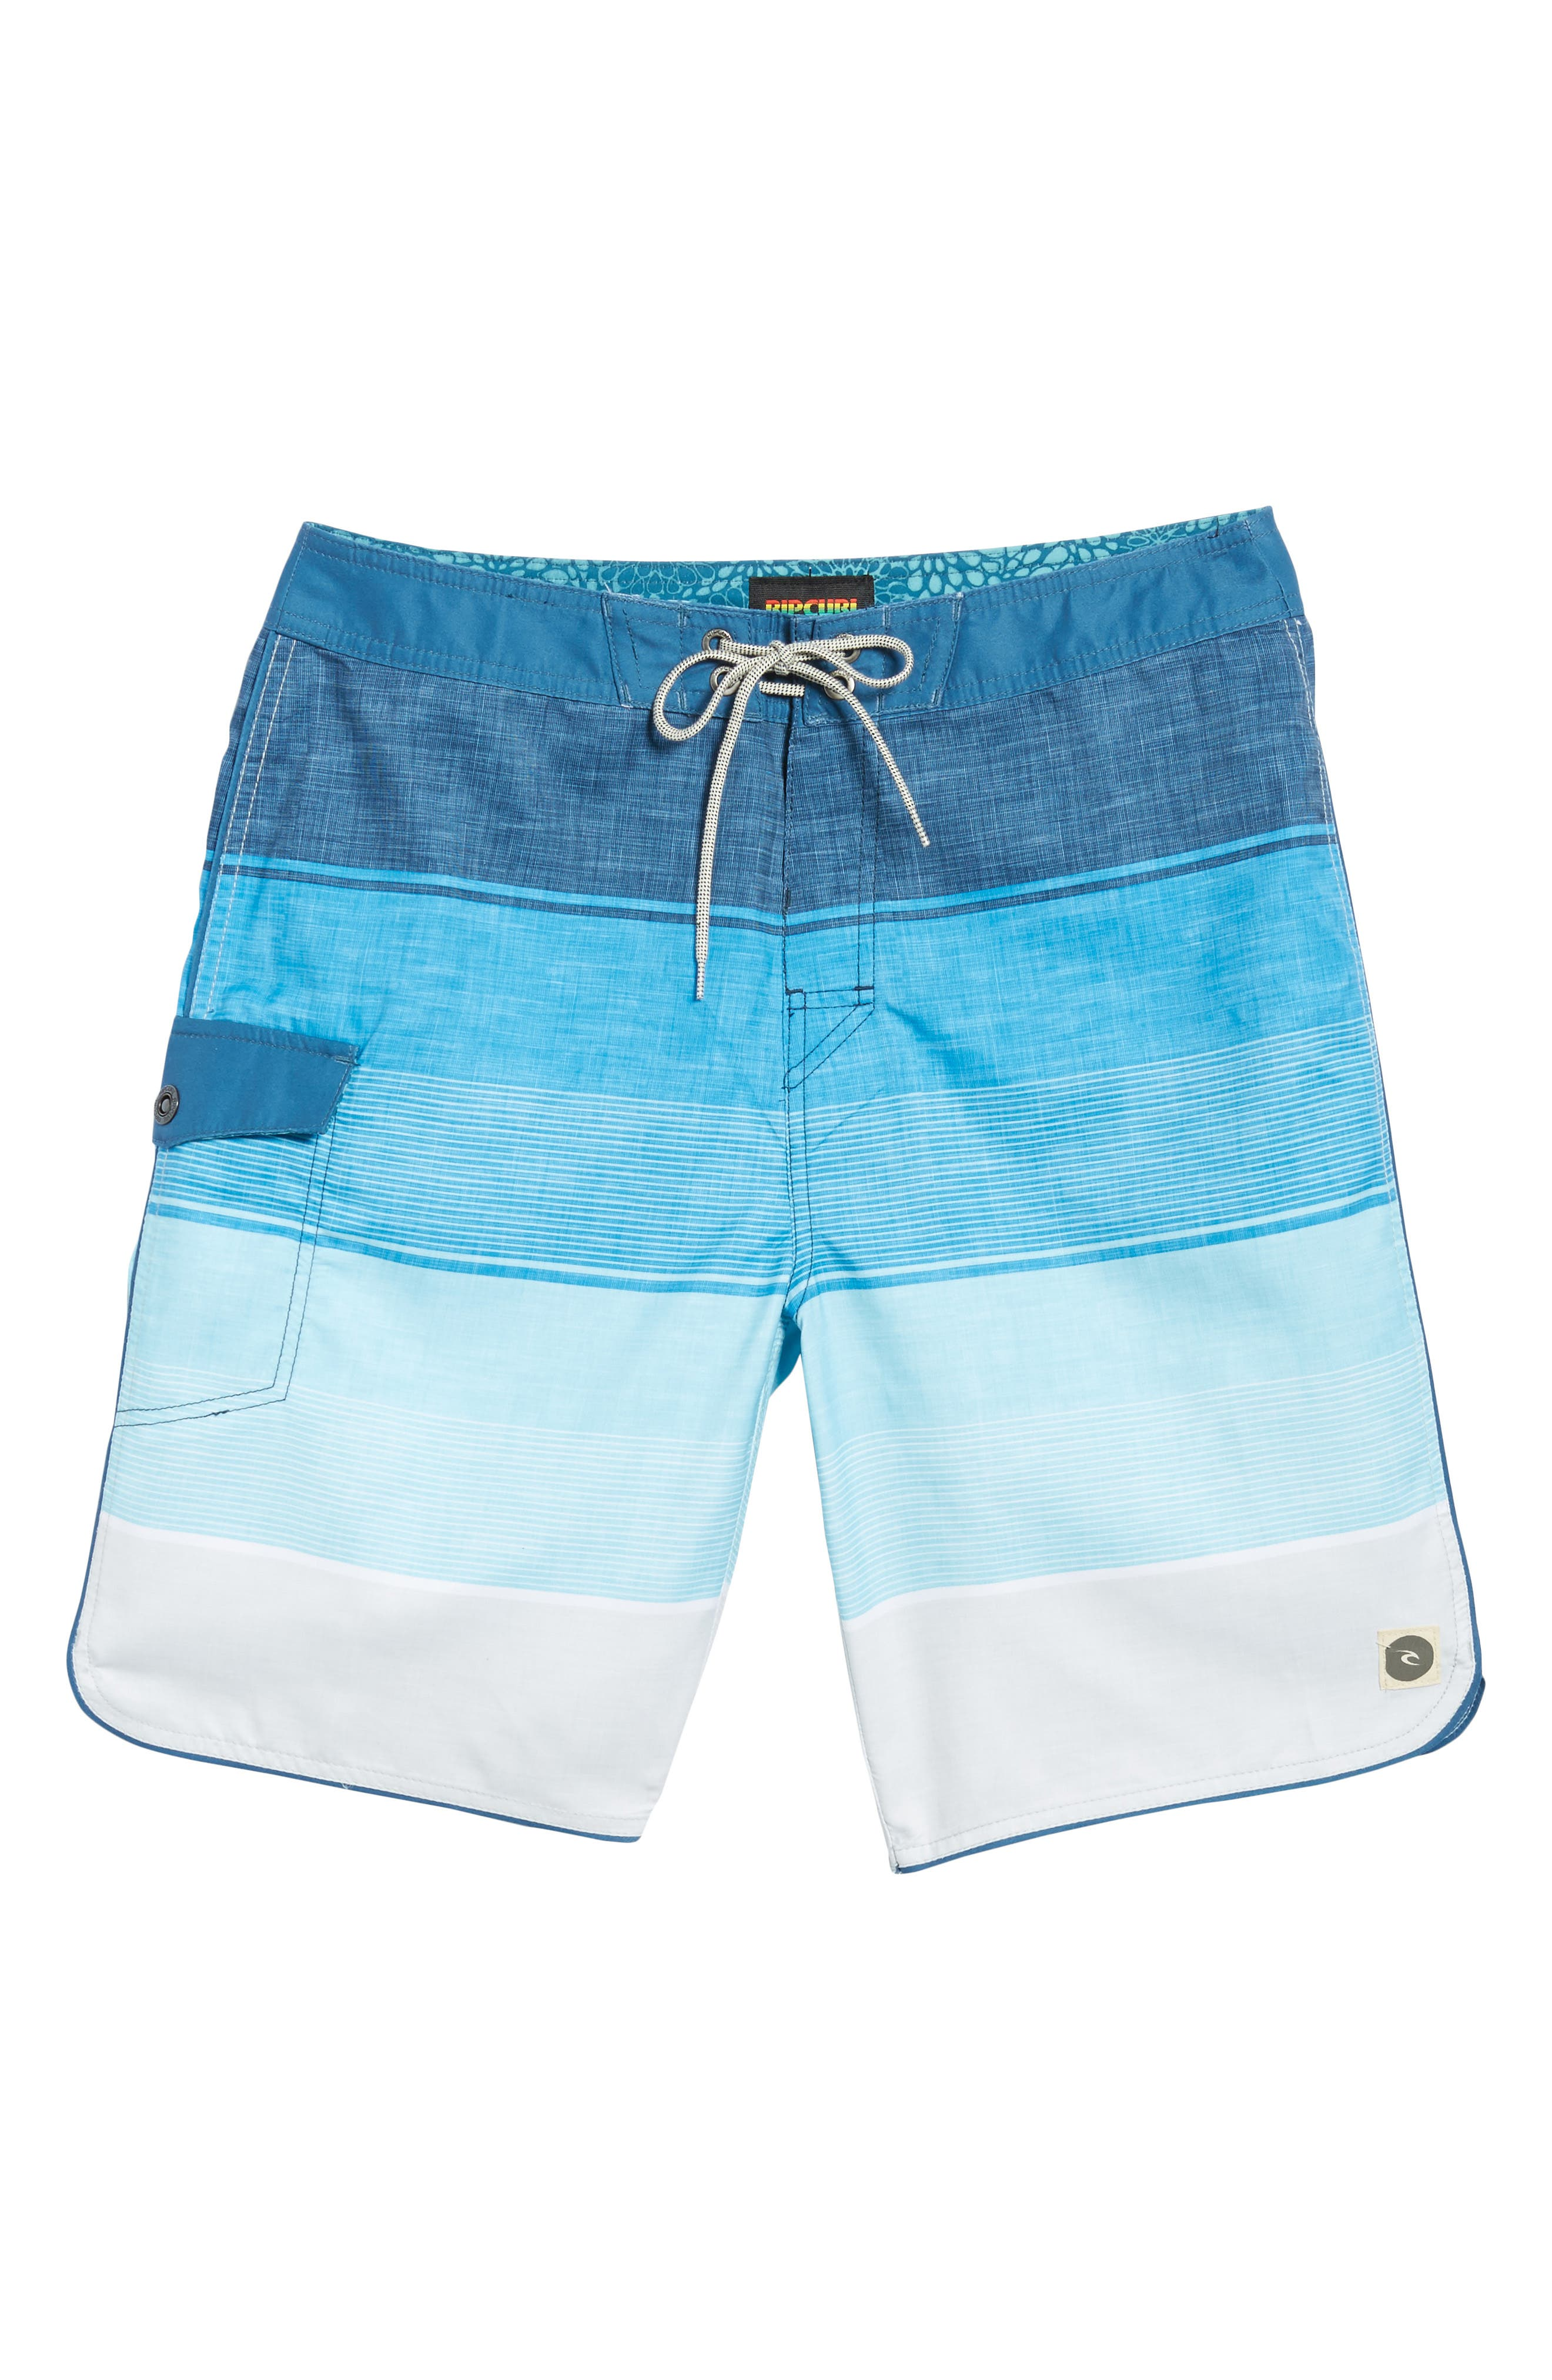 Good Vibes Board Shorts,                             Alternate thumbnail 17, color,